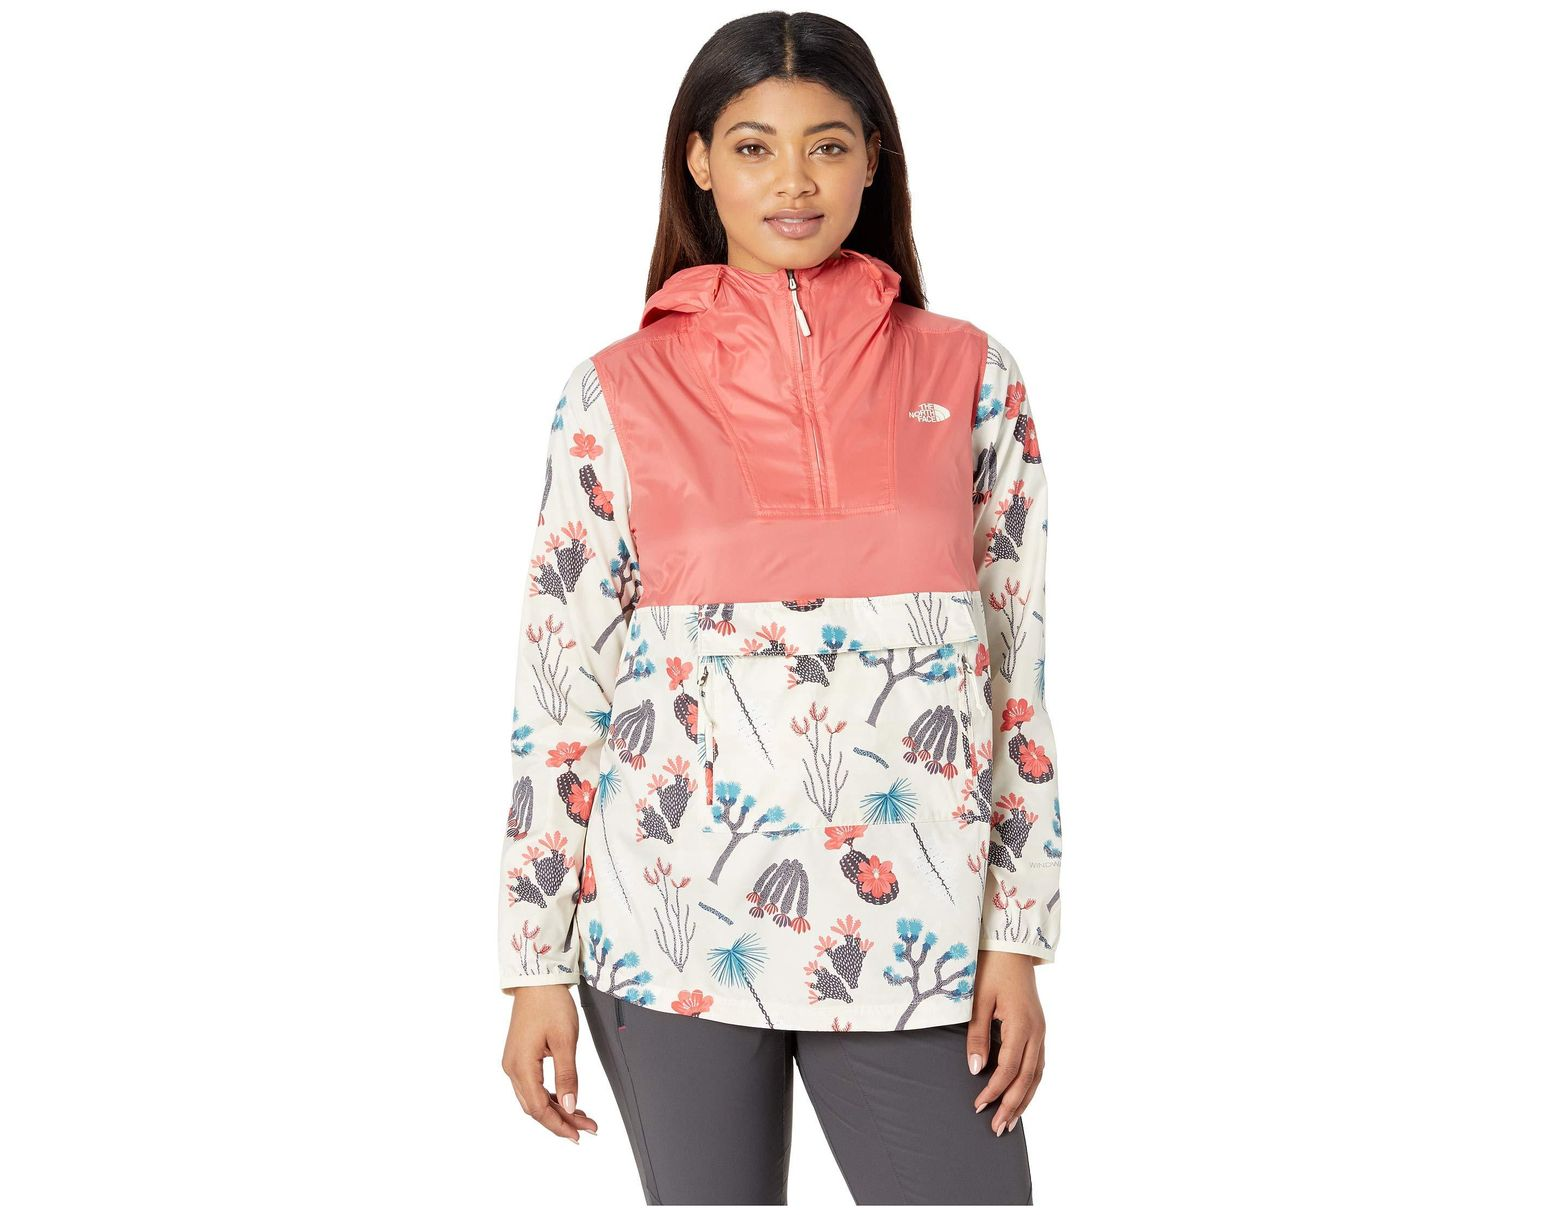 bfecec40f Women's Printed Fanorak